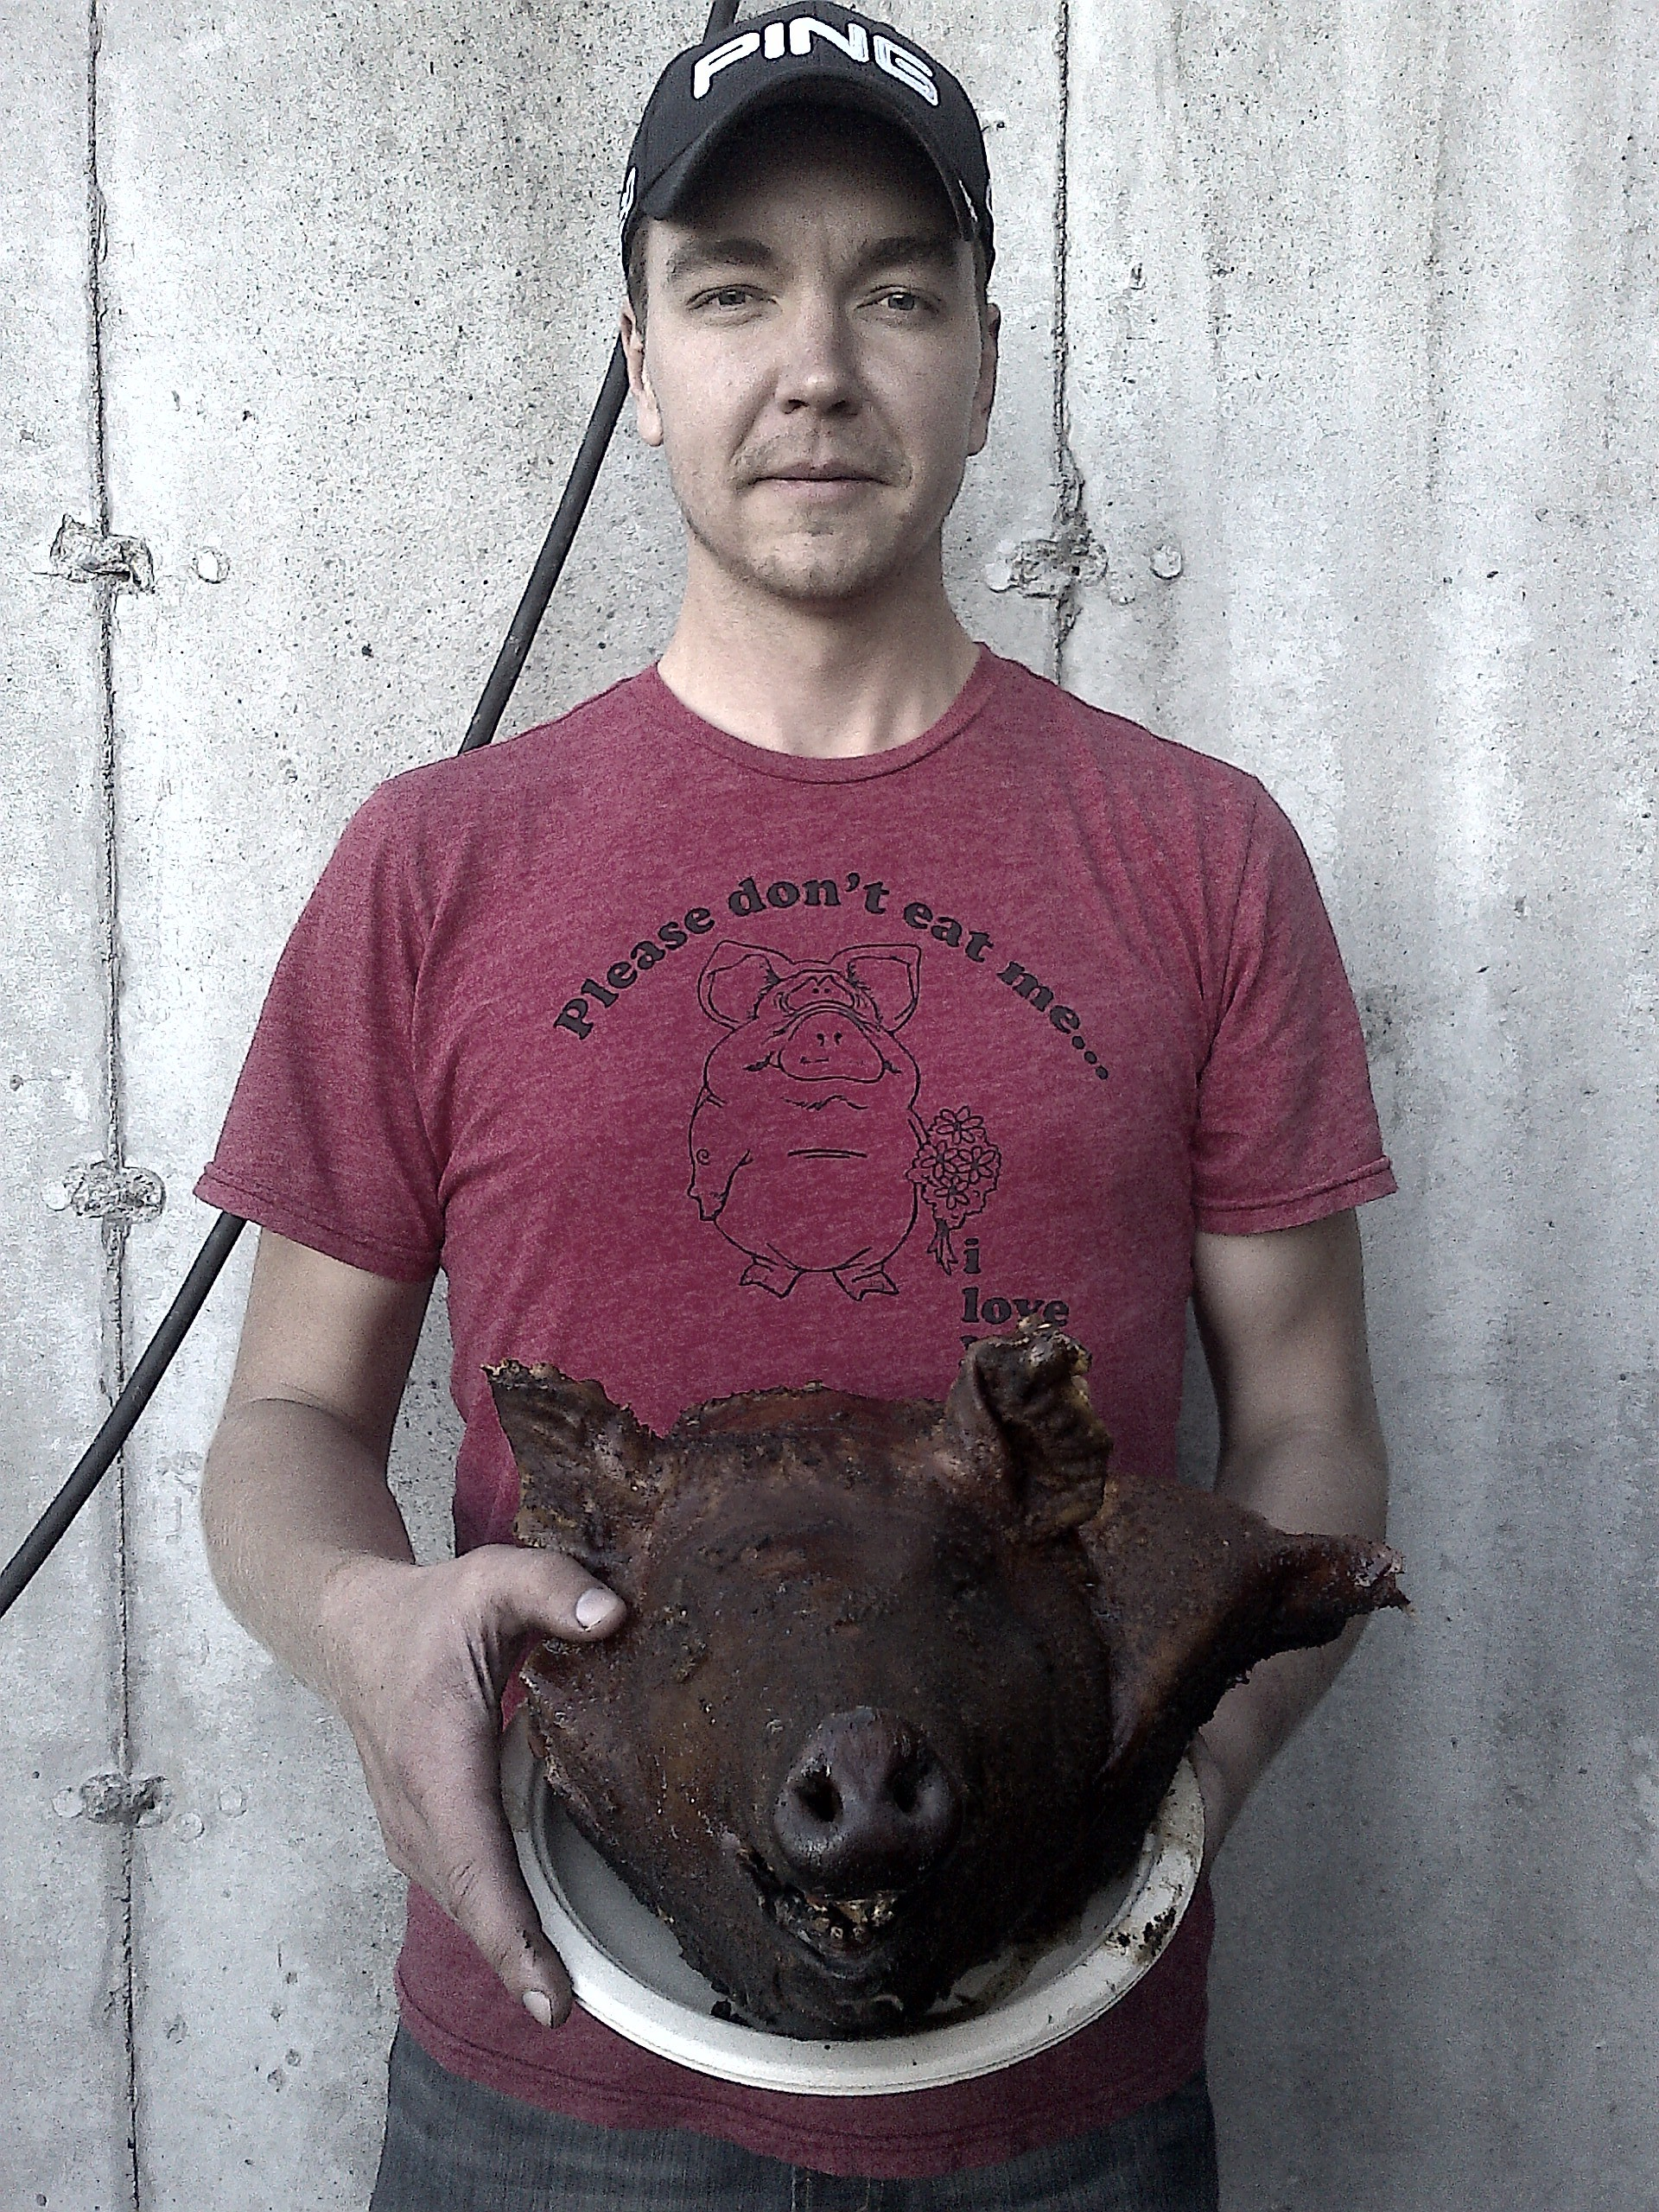 Me with pig head. Not even my cute t-shirt could save this pig...